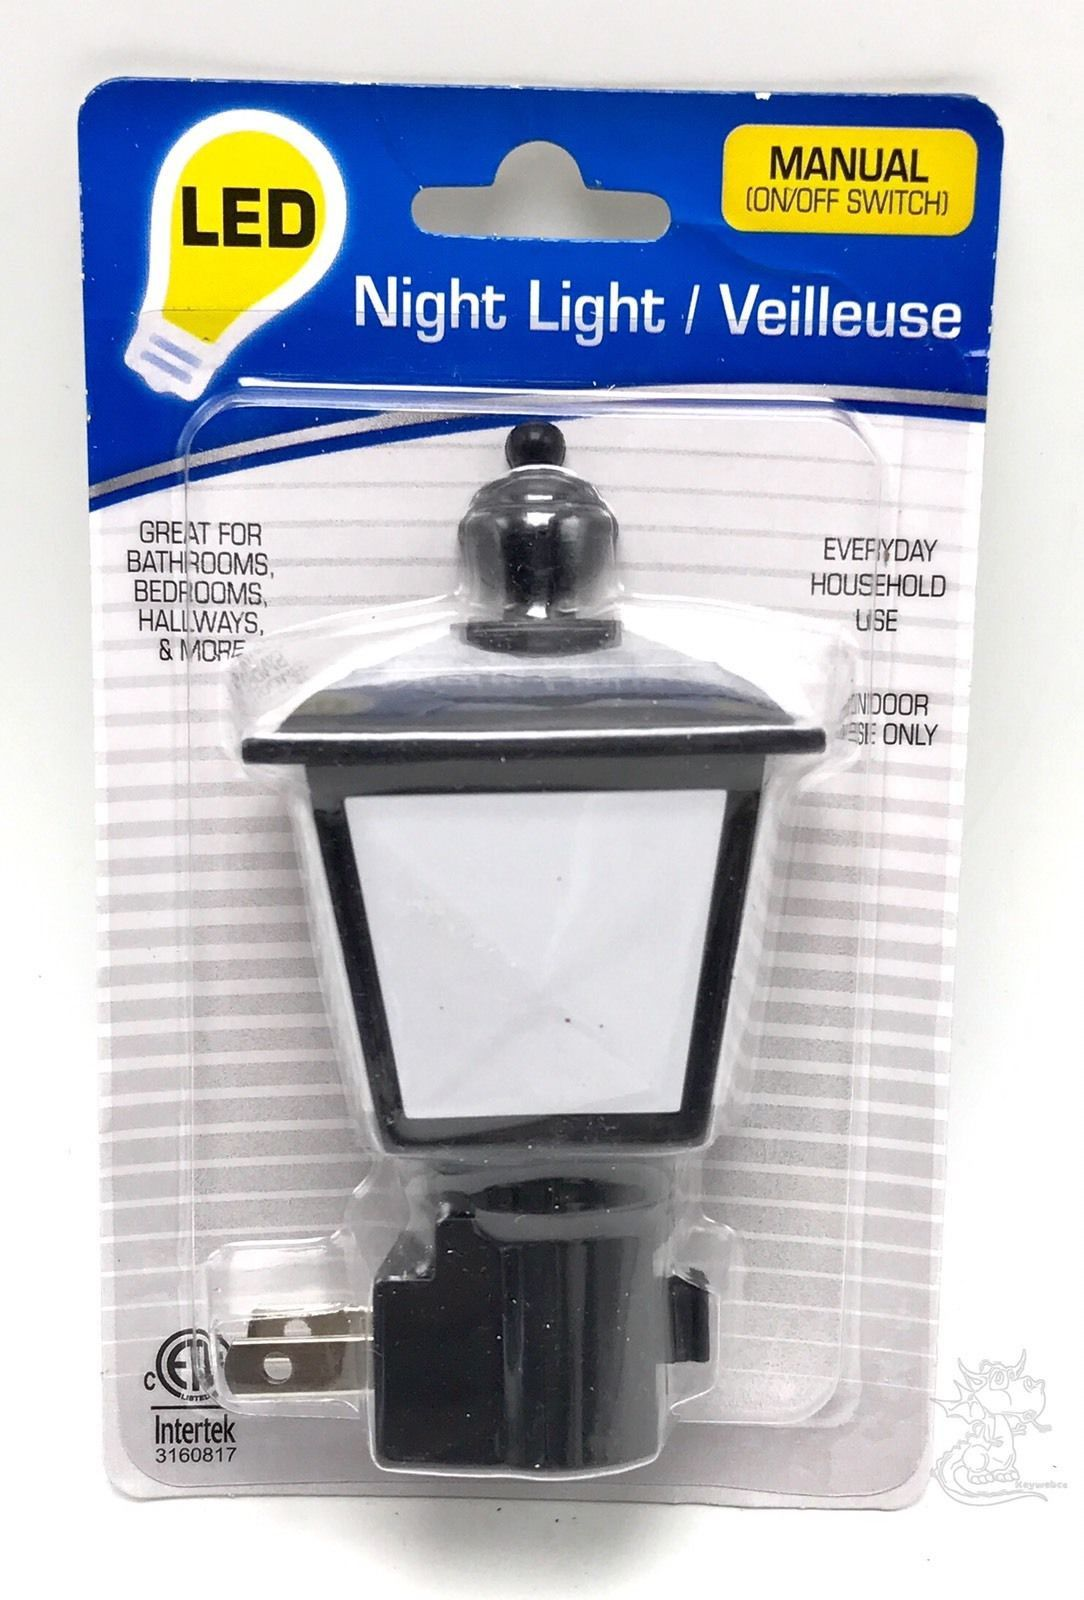 New Nightlight Manual Off And OnEnergy Efficient New Purchased For Resale  By KeywebcoVideo Inspected During Shipping Shipped Fast And Free From The  USAThe ...